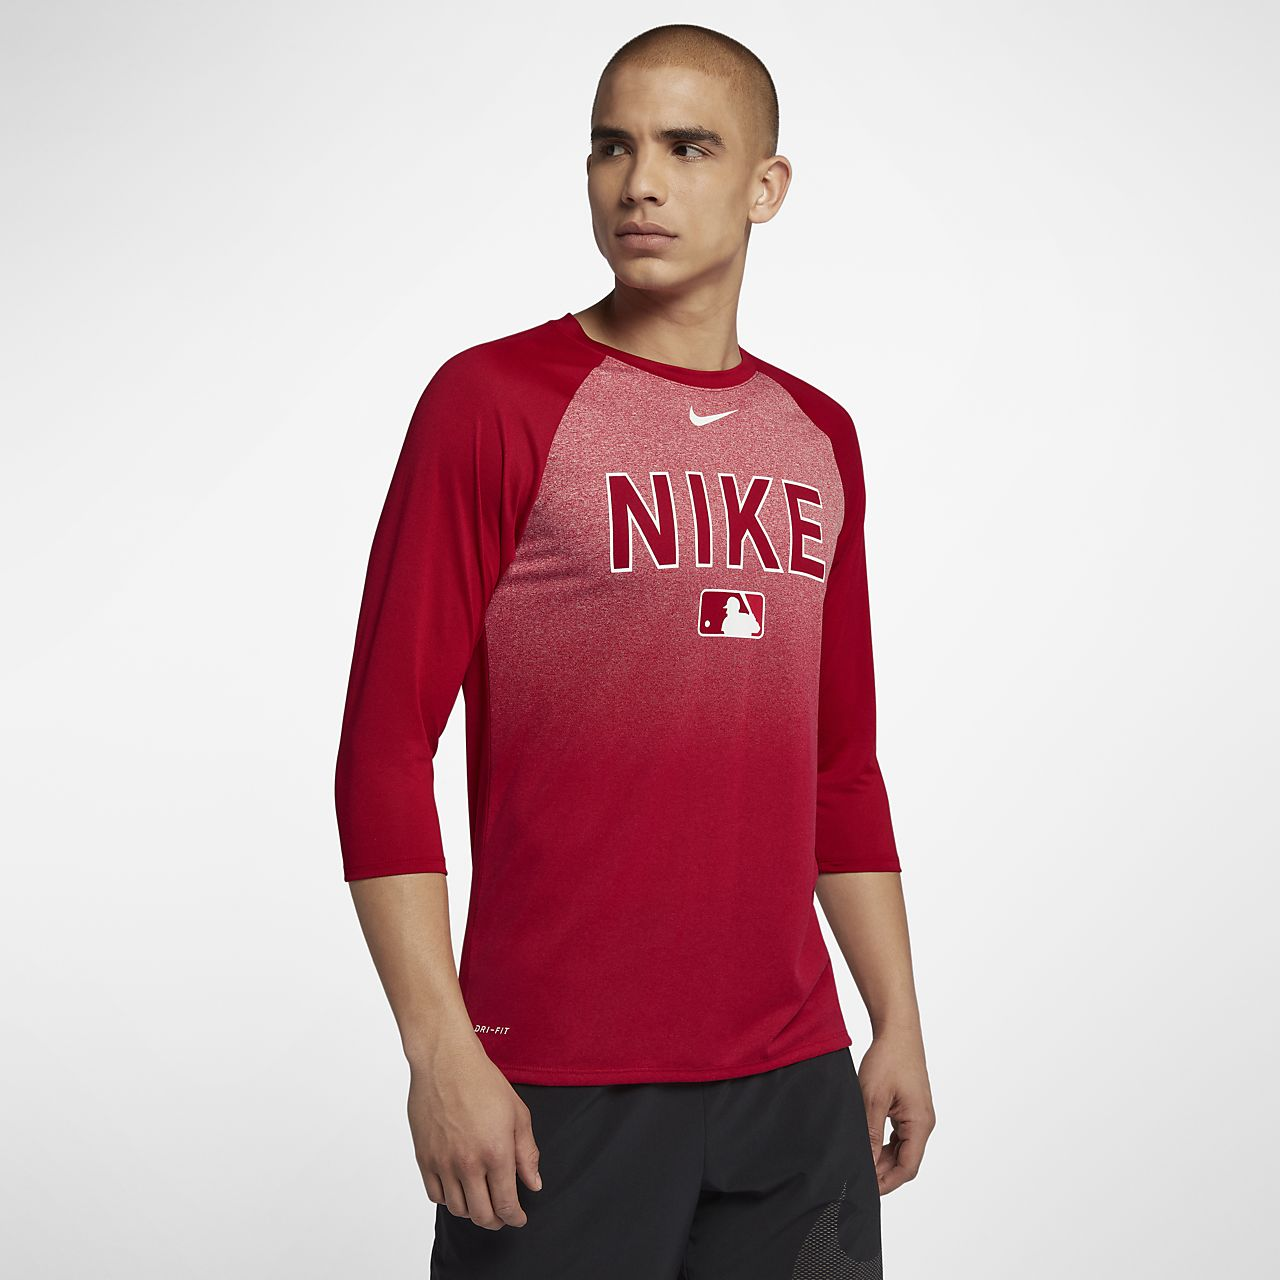 Nike Dri Fit Legend Raglan Mlb Mens 34 Sleeve Baseball T Shirt